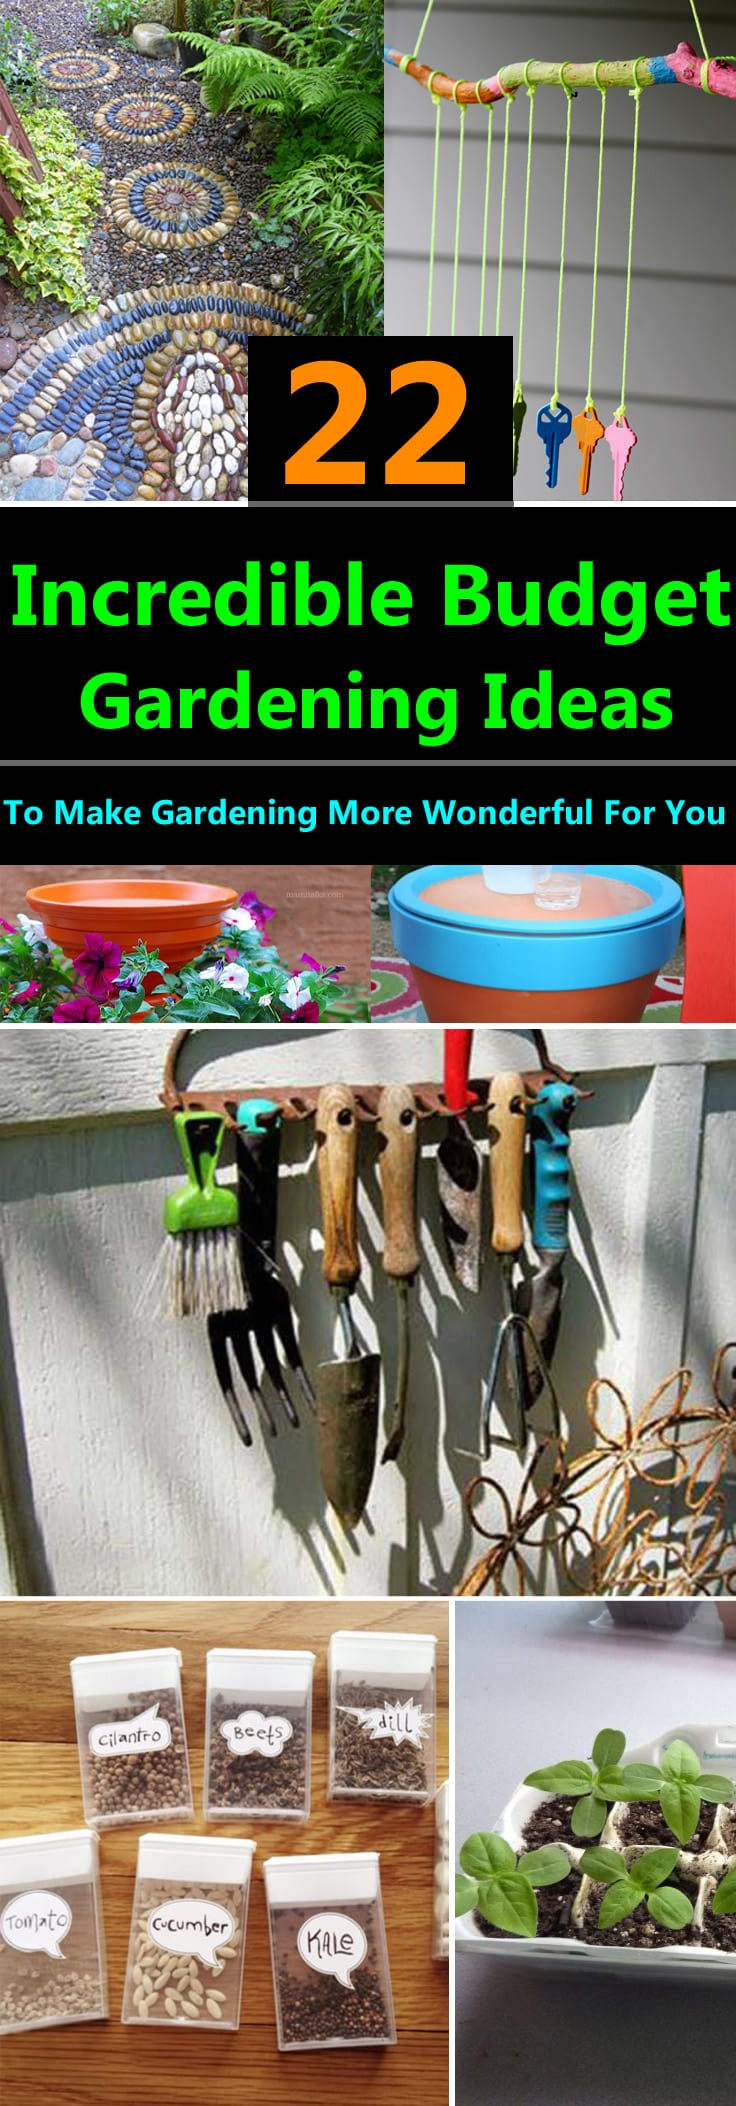 cheap easy and functional diy garden ideas on a budget thatll make gardening - Small Garden Ideas On A Budget